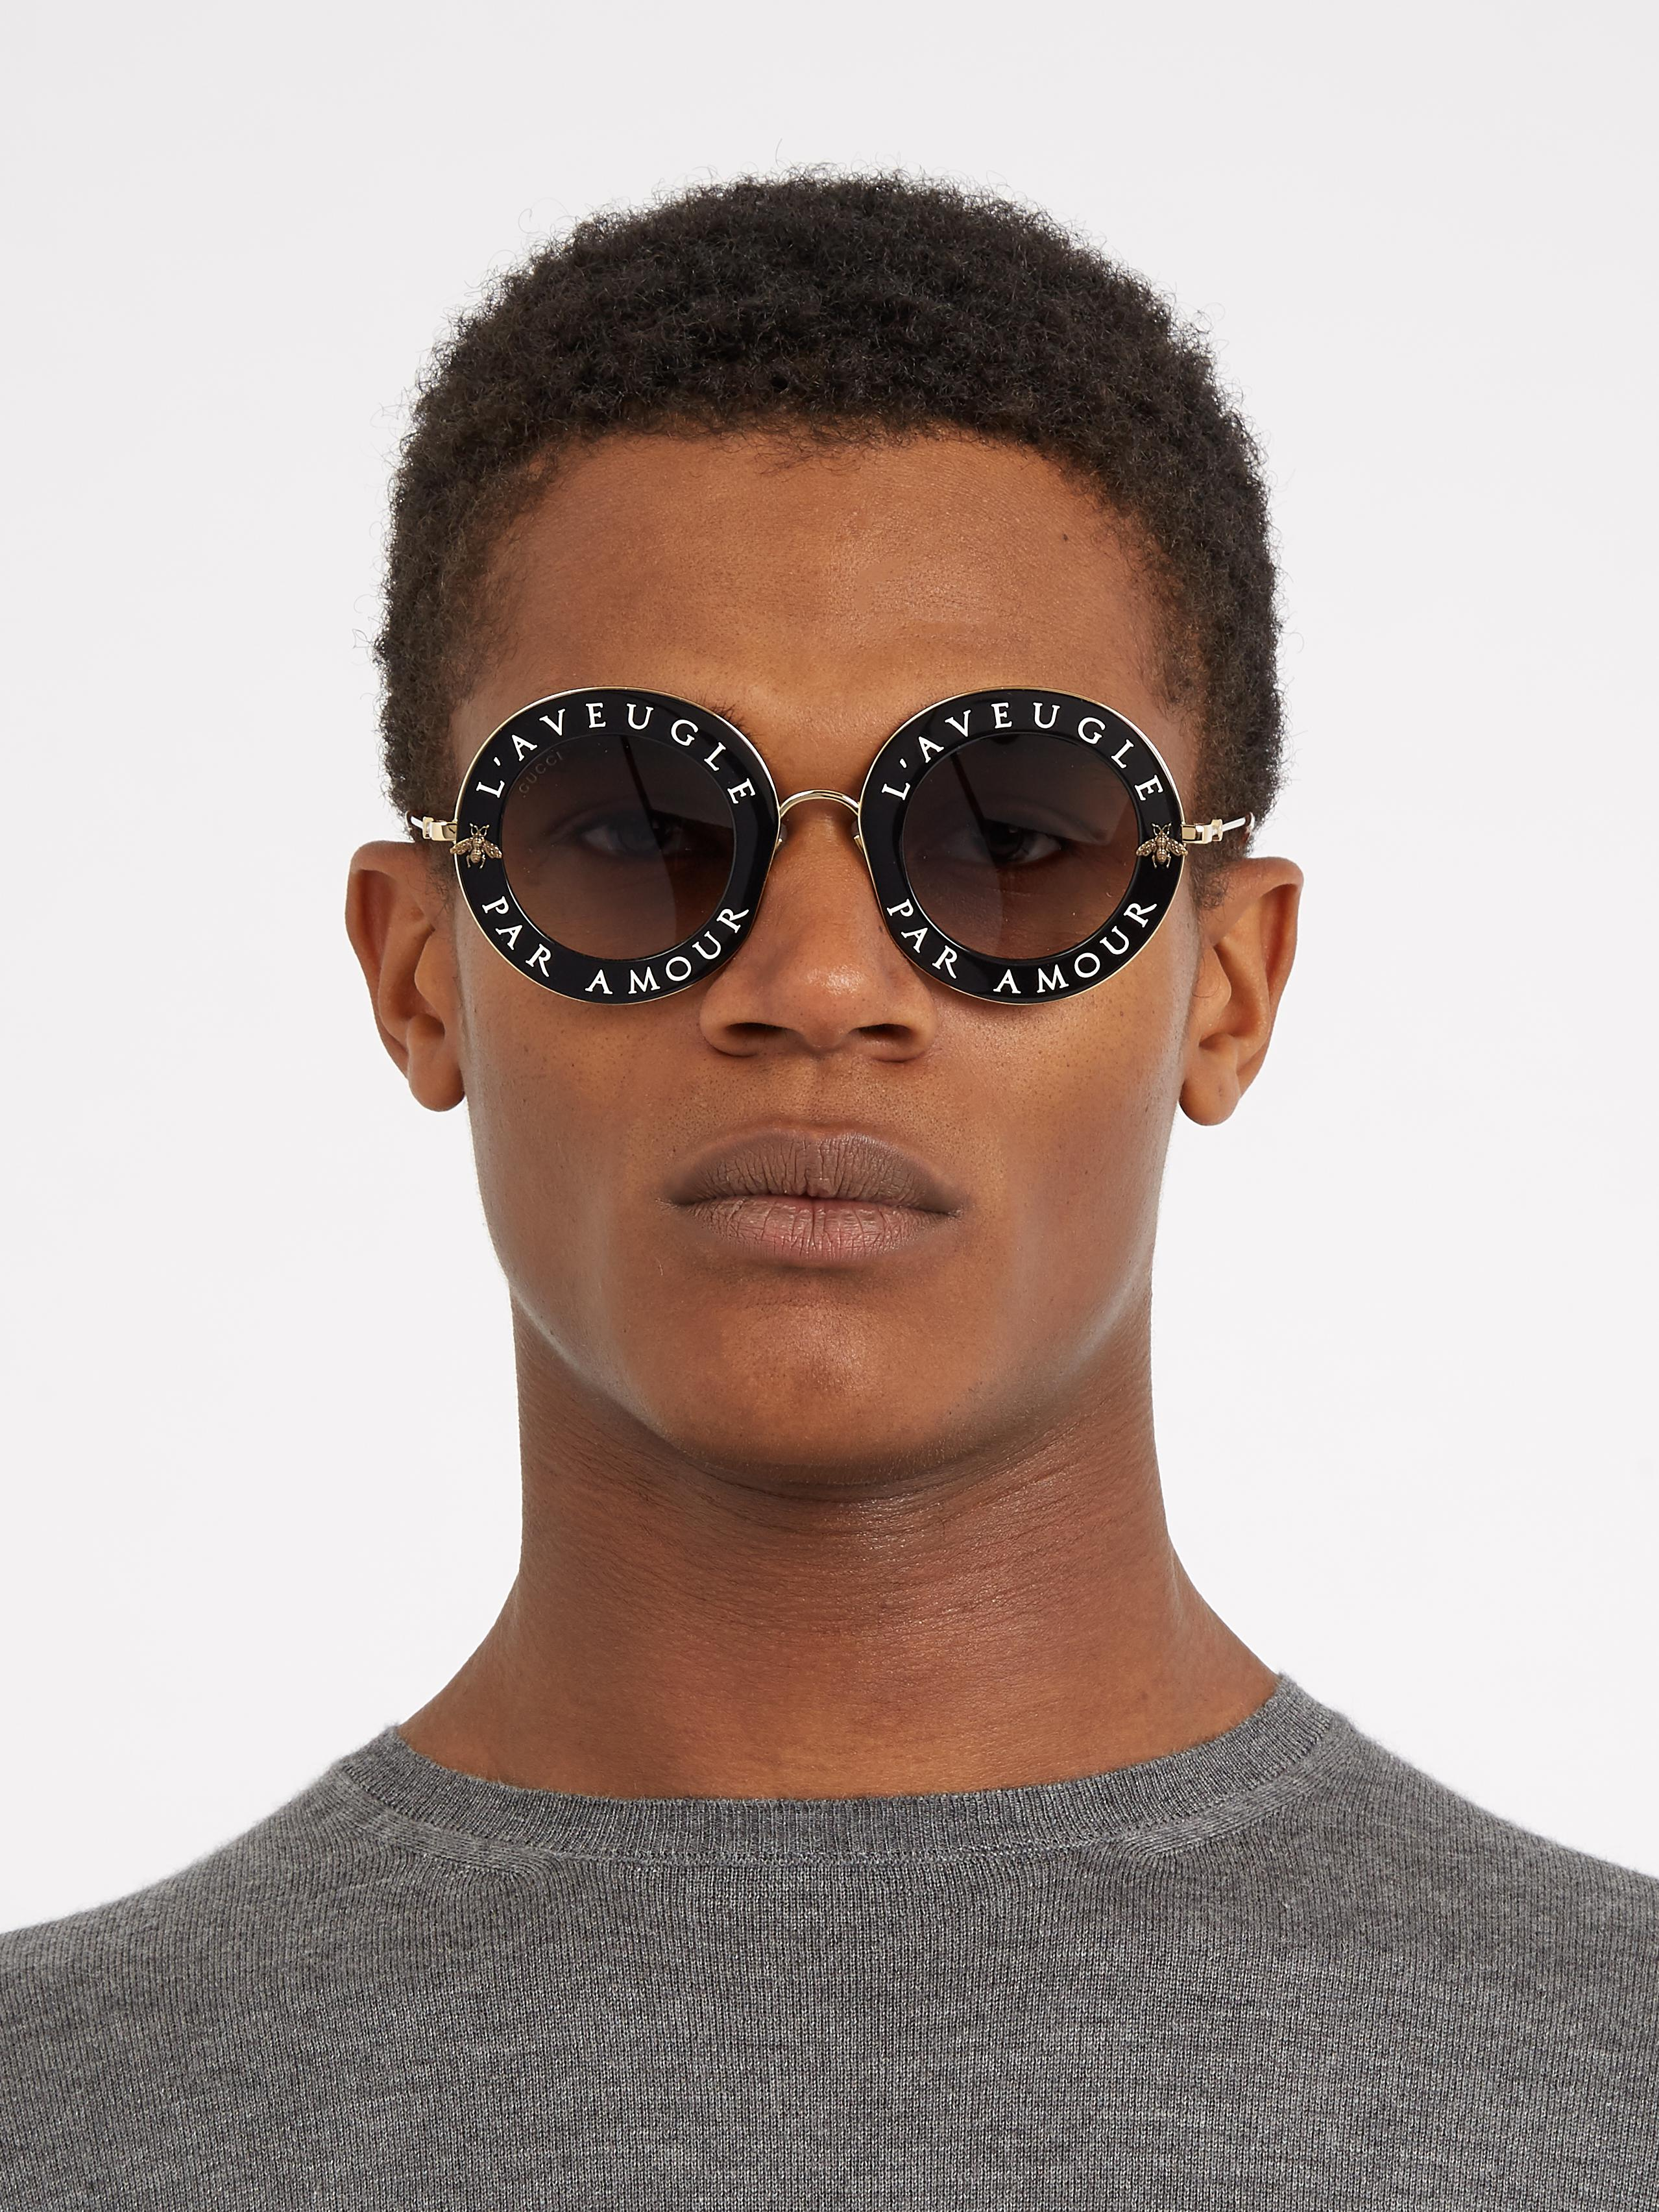 76dffc85f53 Lyst - Gucci L aveugle Par Amour Round-frame Sunglasses in Black for Men